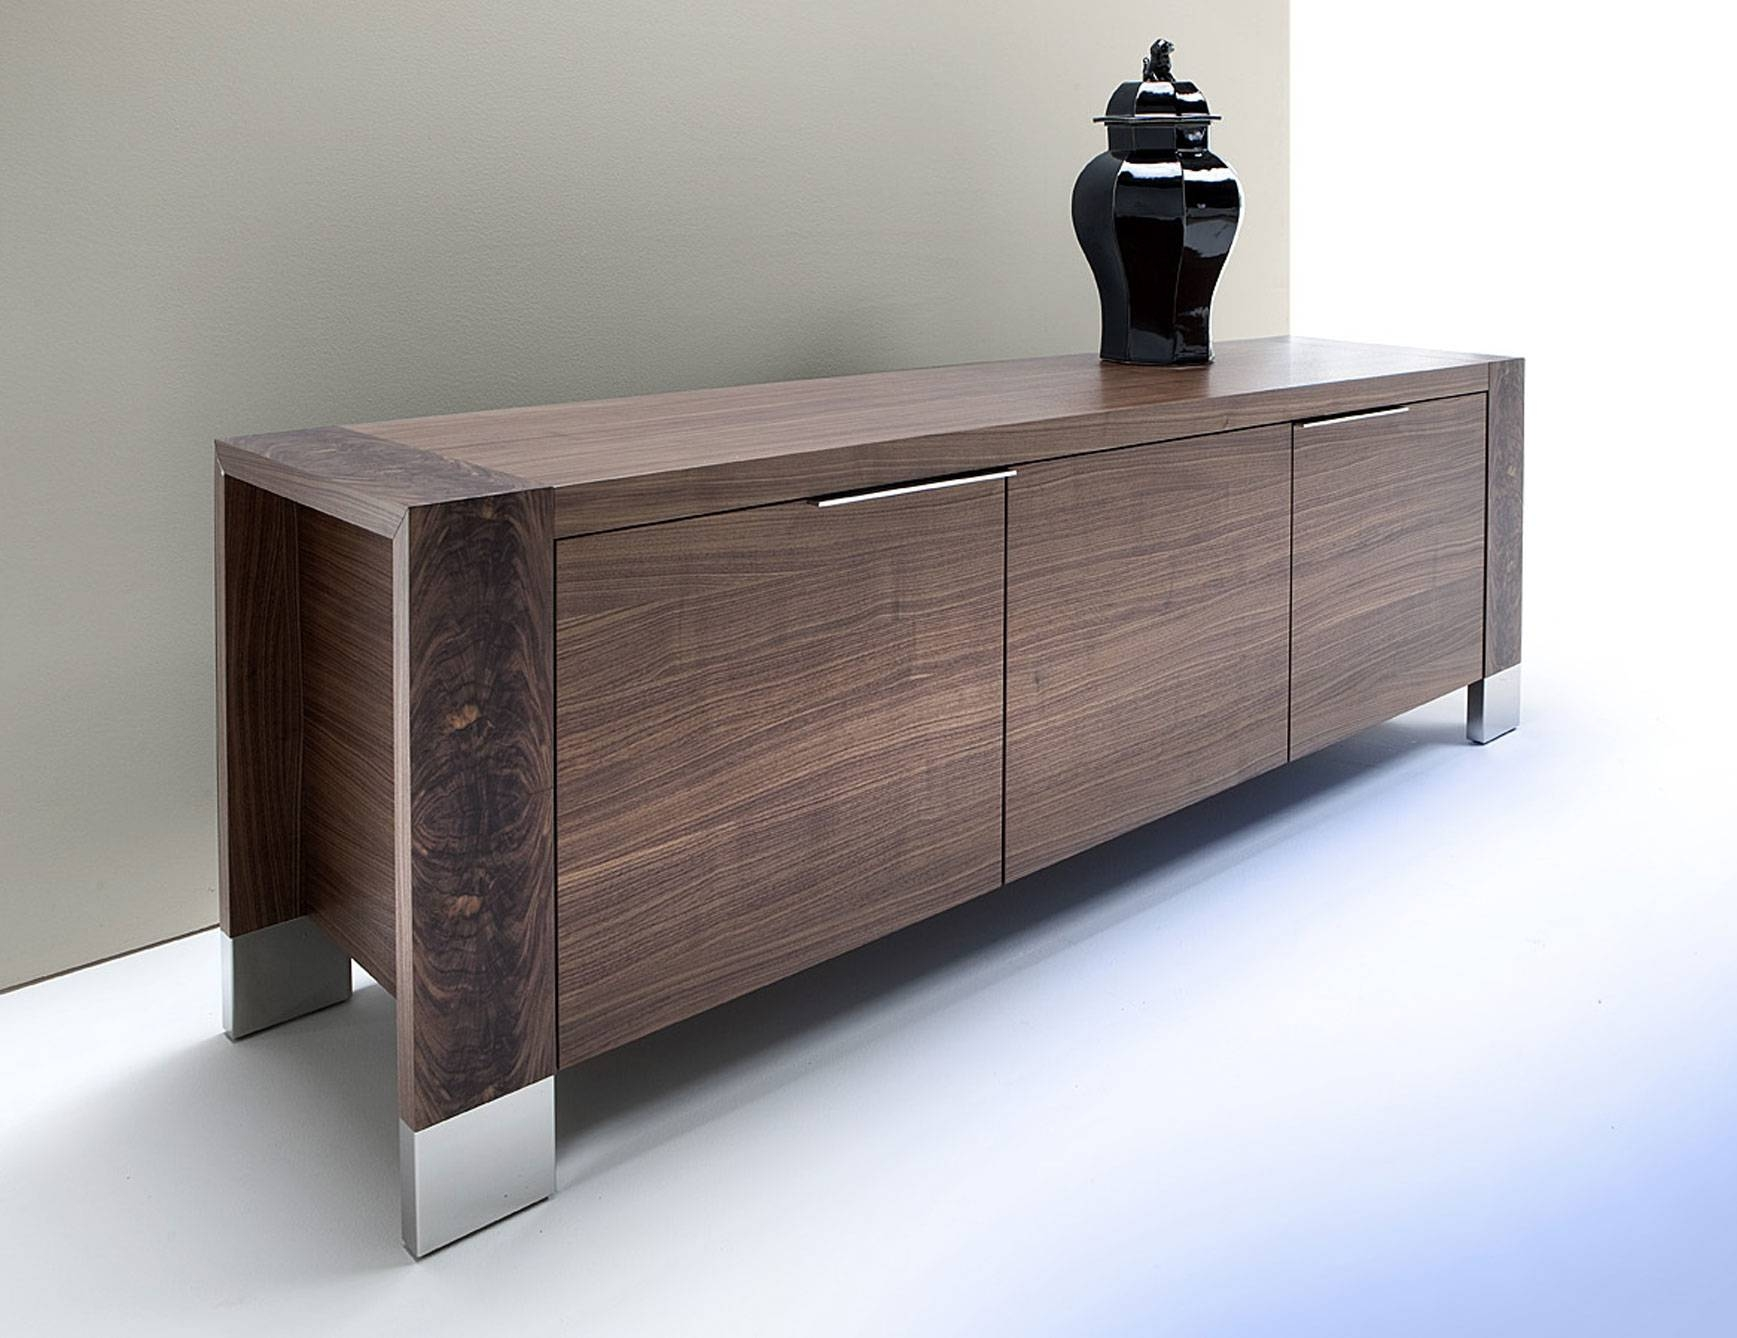 Sideboards: Amusing Buffet Storage Credenza Sideboards Credenzas Within Modern Sideboard Furniture (View 6 of 30)